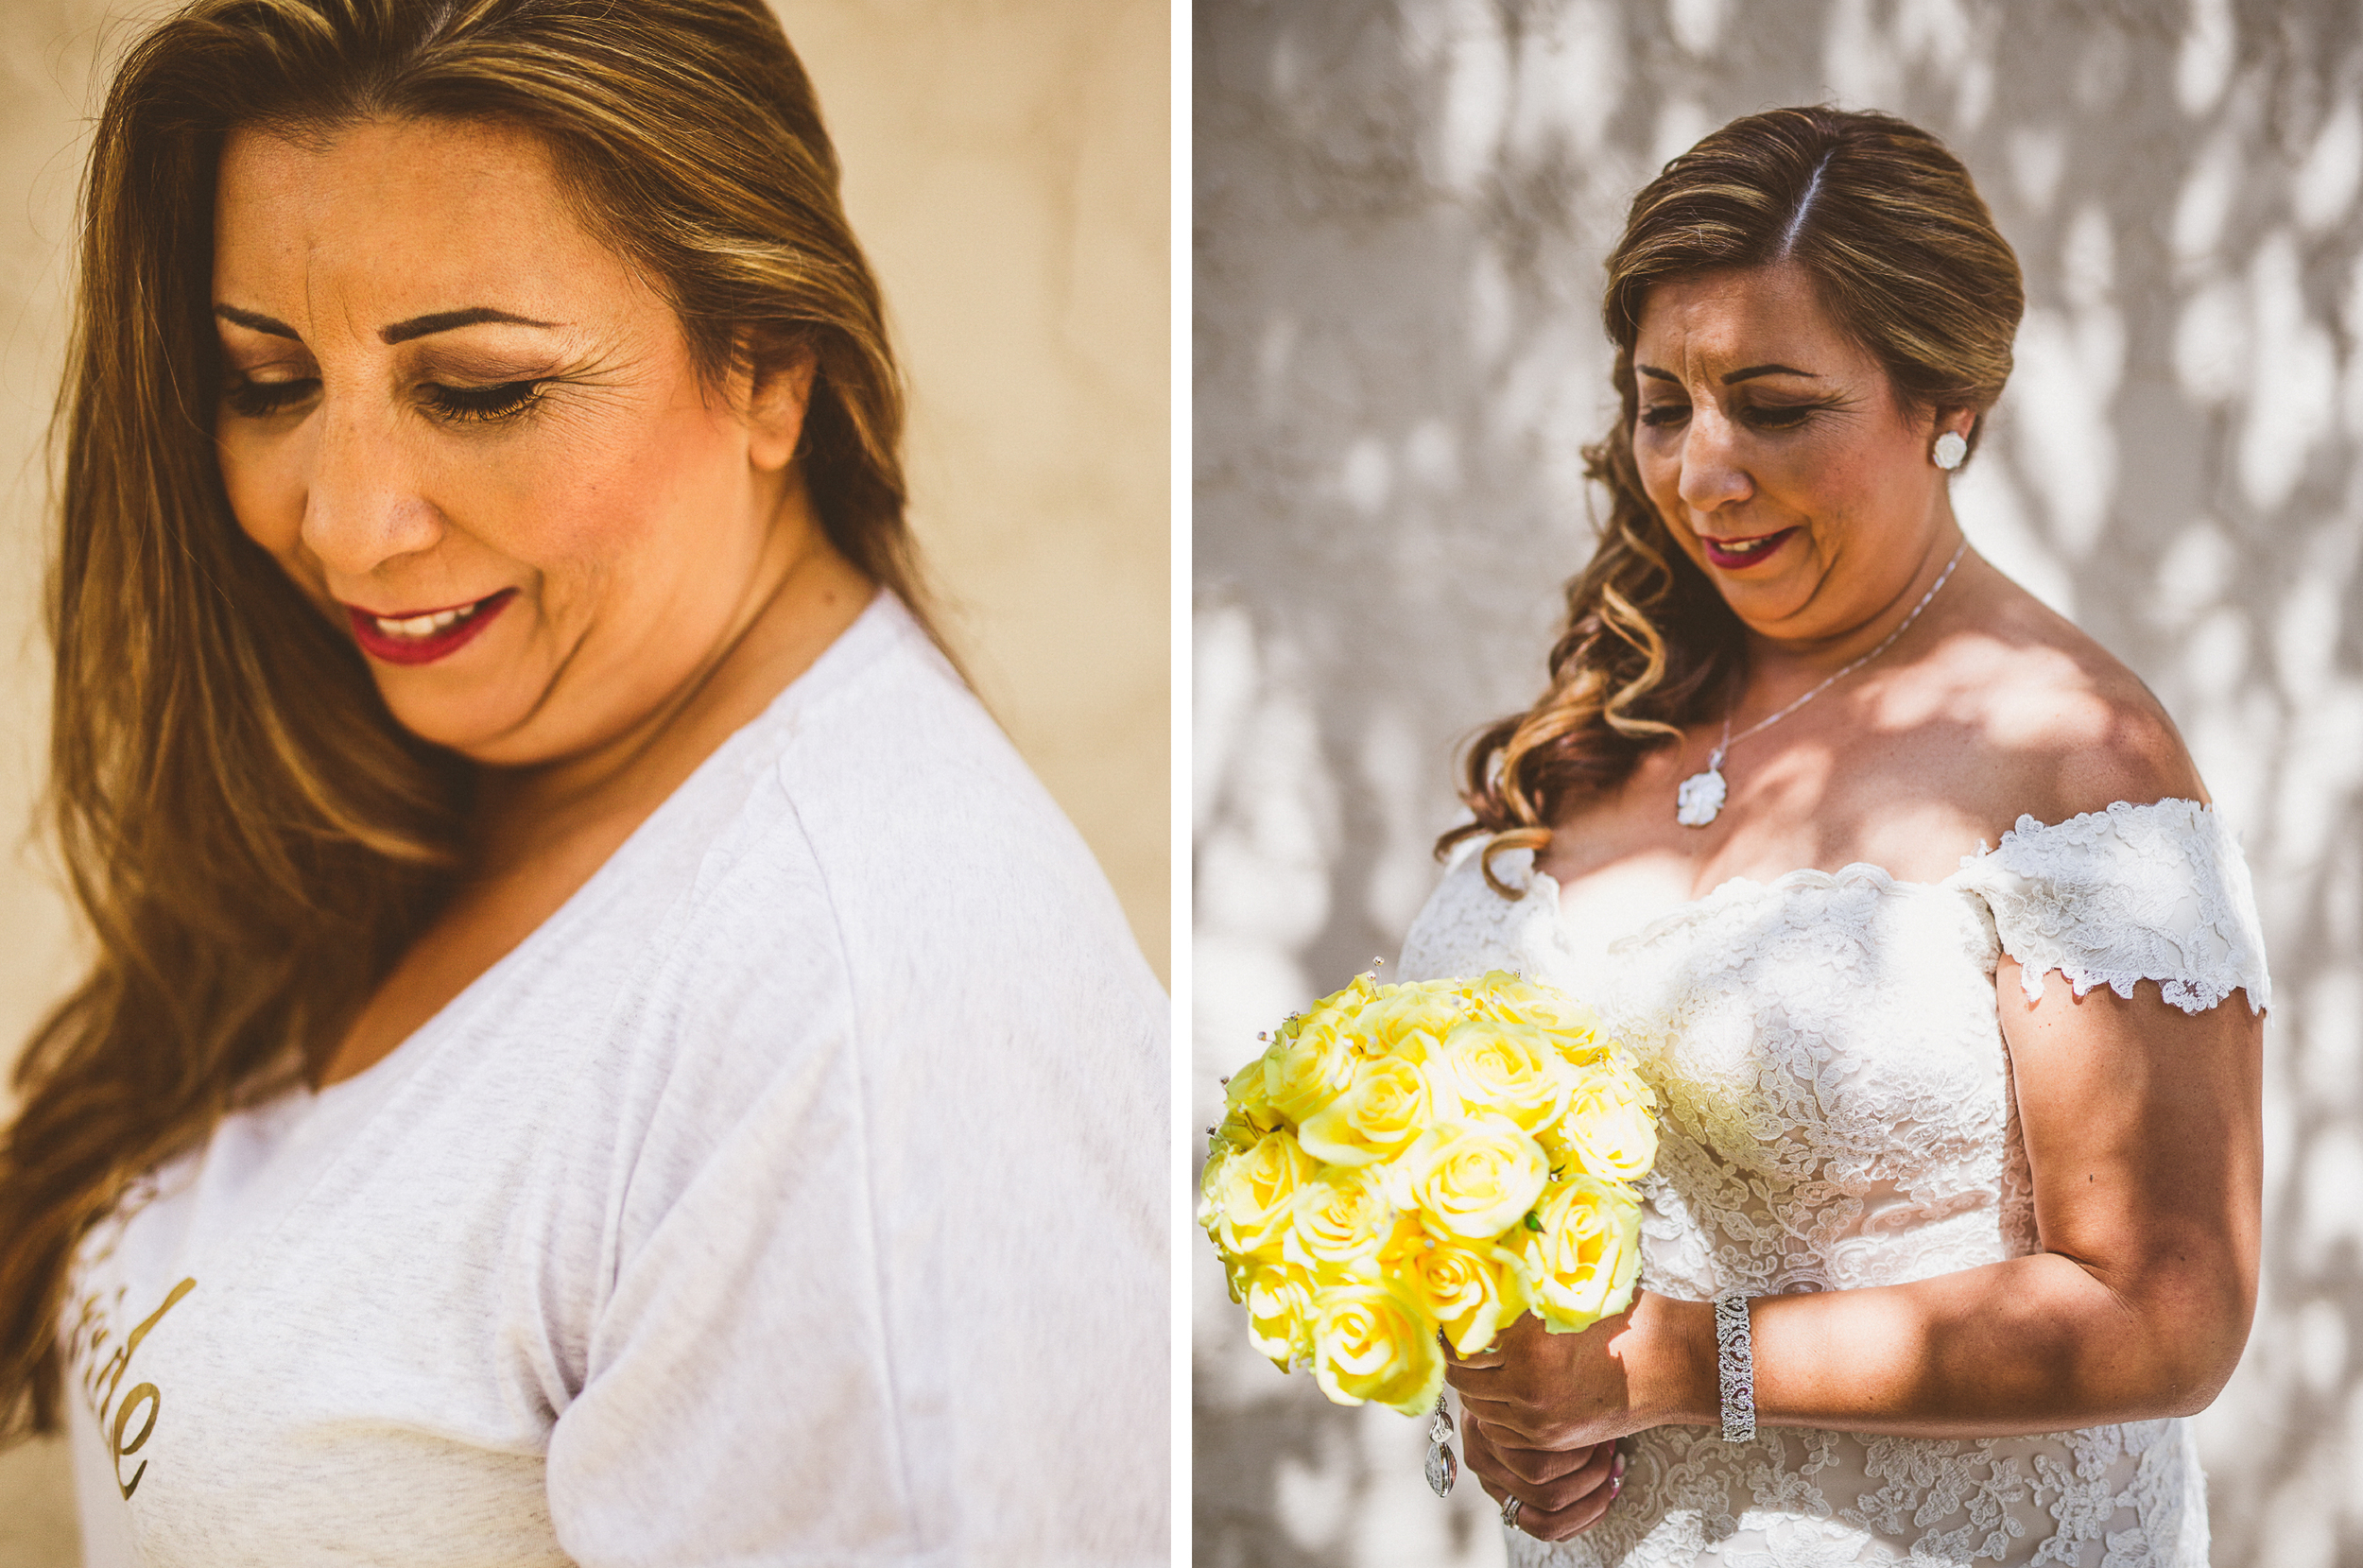 san diego wedding   photographer   collage of bride before and after wearing dress